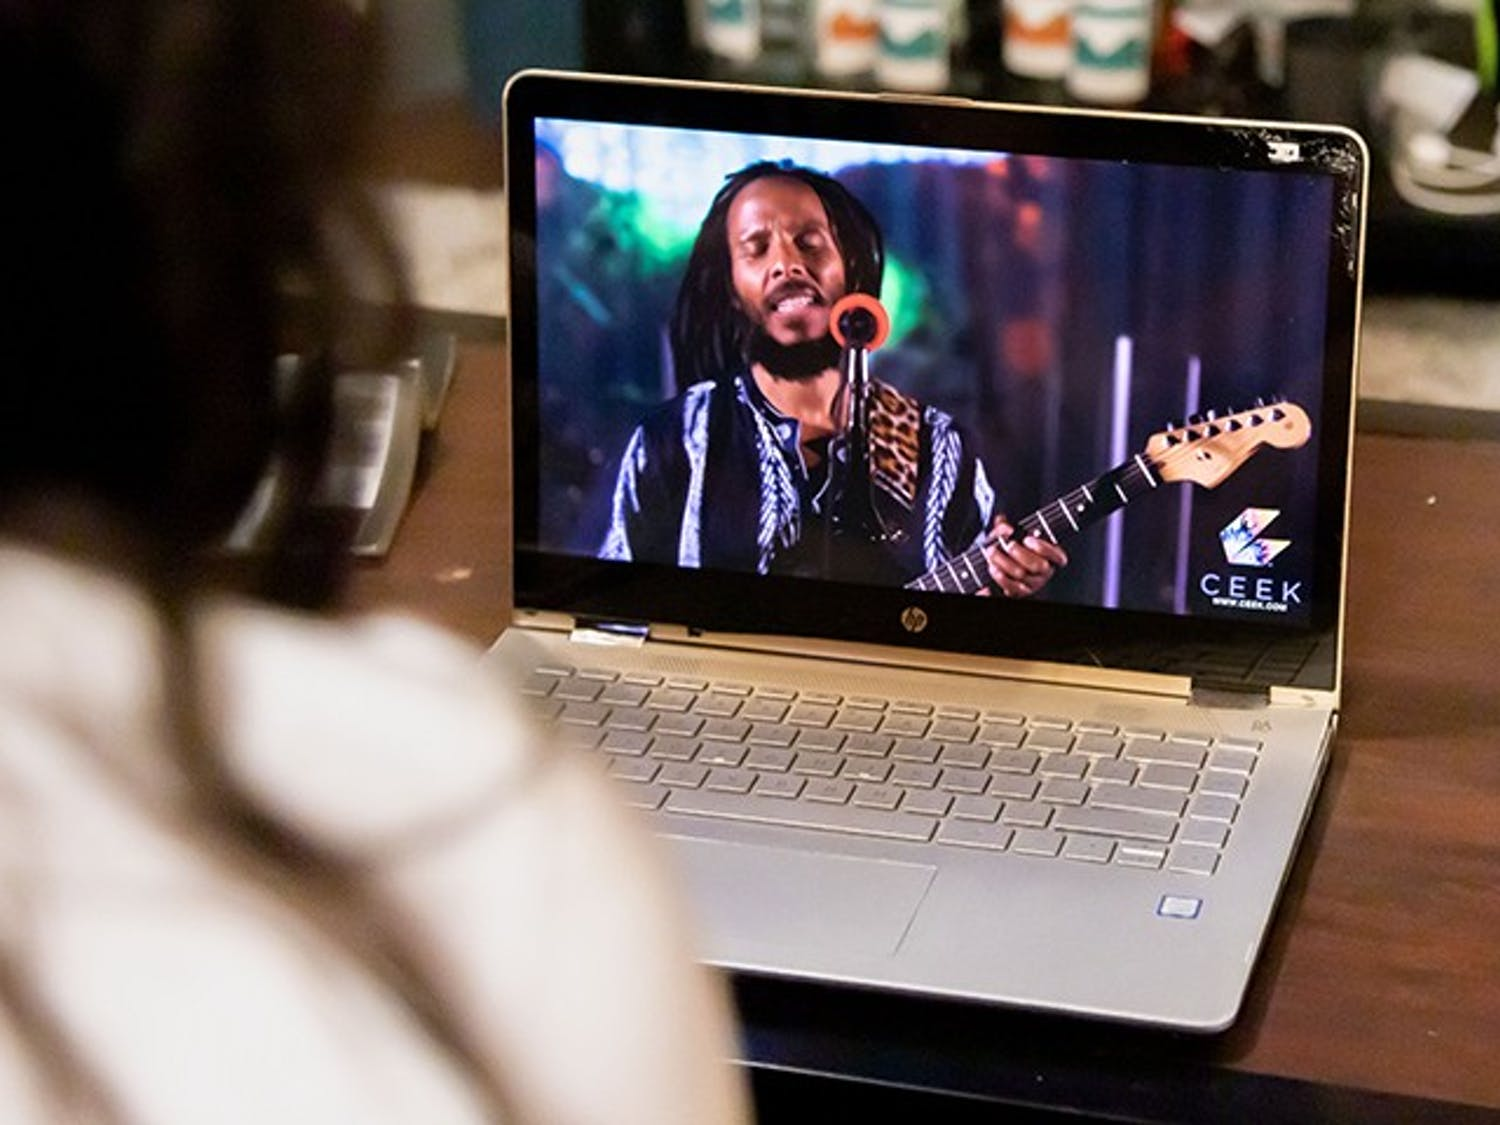 A person sits on their couch while streaming a concert on their laptop. Live-stream concerts became popular during the COVID-19 pandemic as they provided a safe way to attend and enjoy music entertainment.